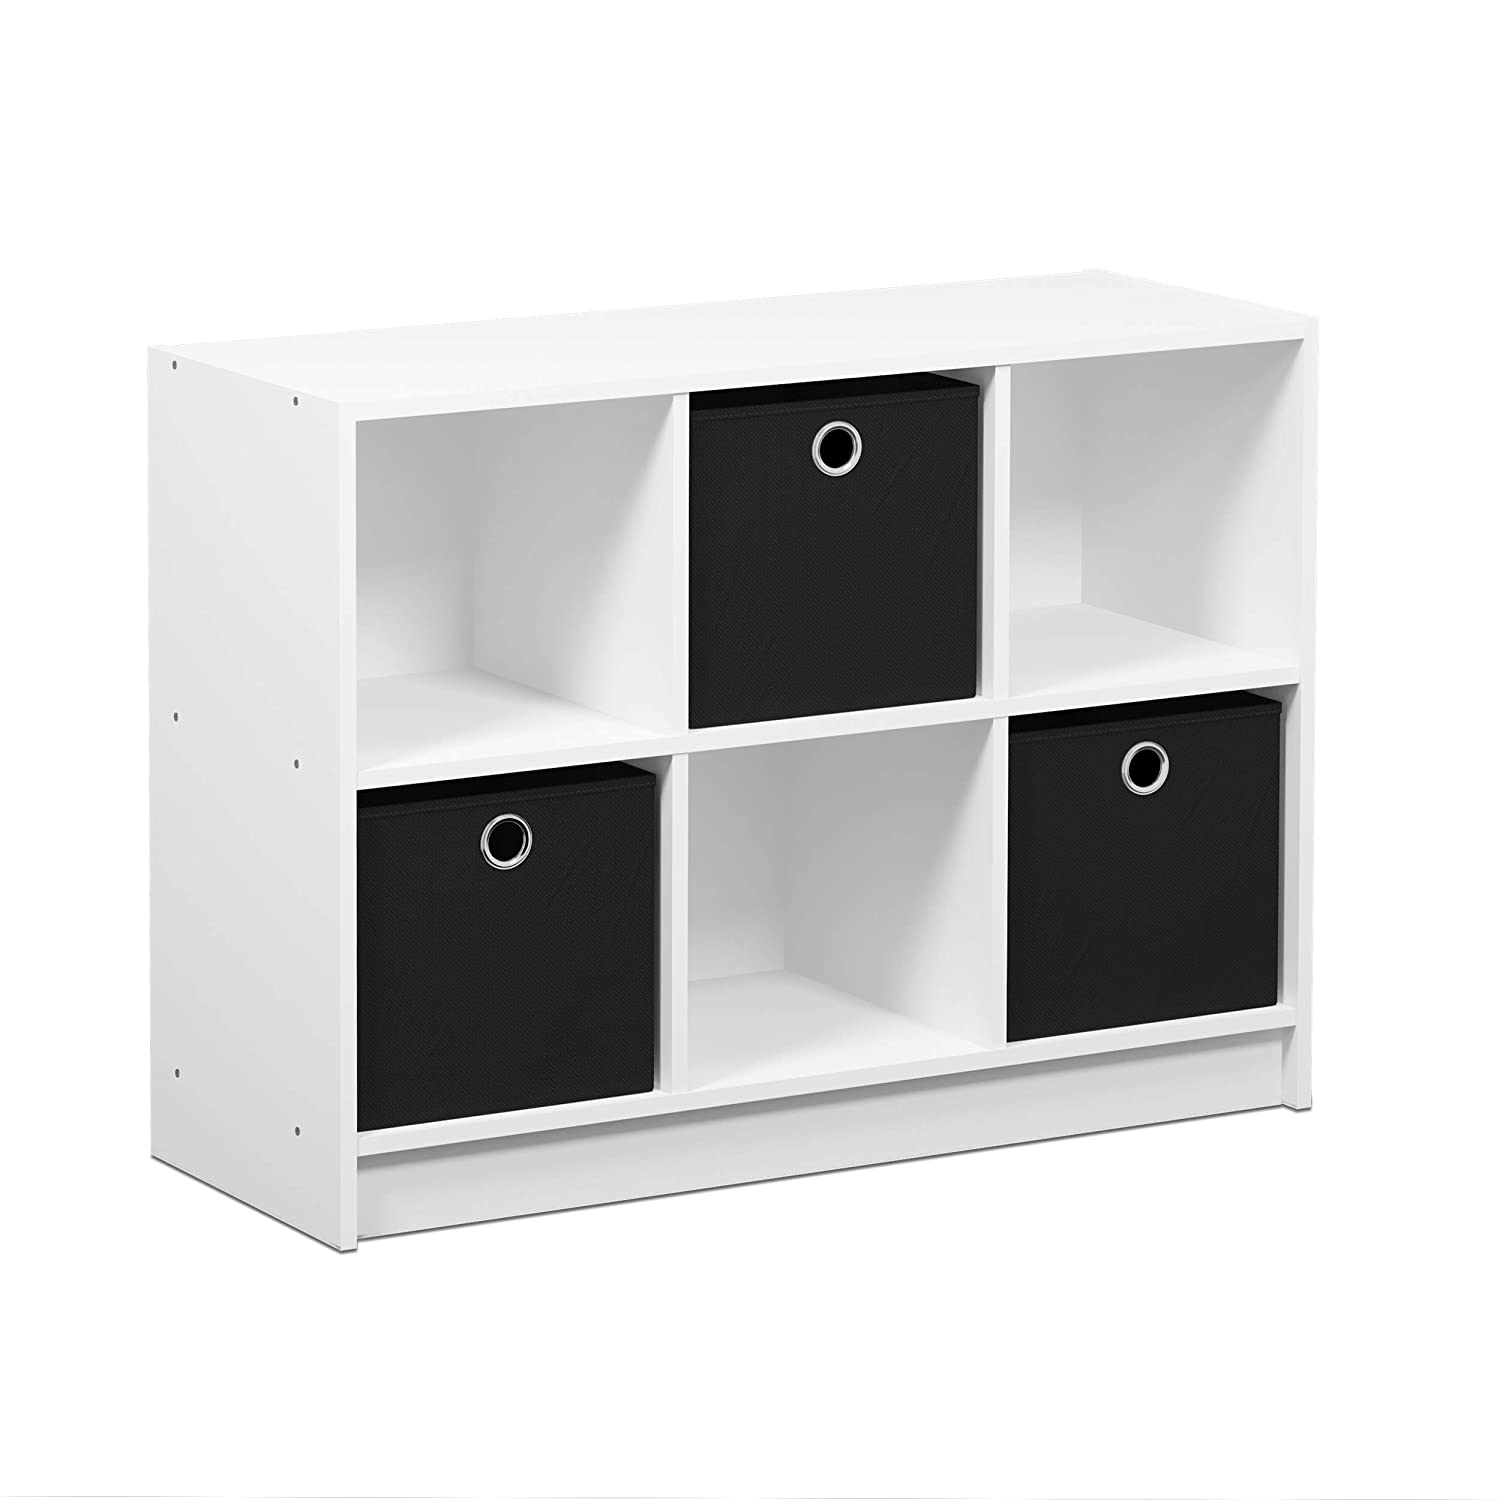 FURINNO Basic 3x2 Bookcase Storage, White/Black